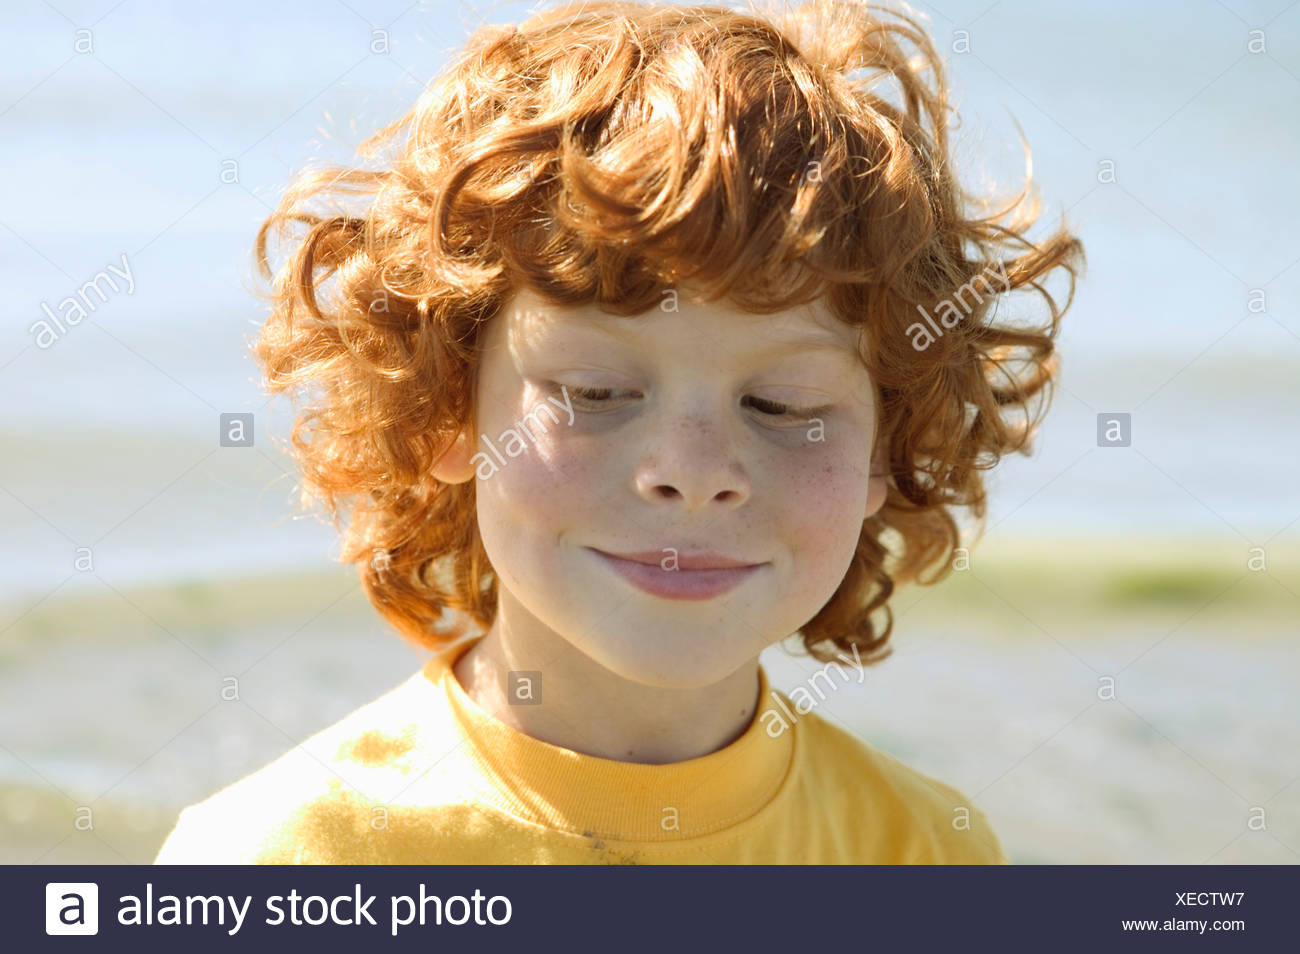 Portrait of a young red headed boy - Stock Image